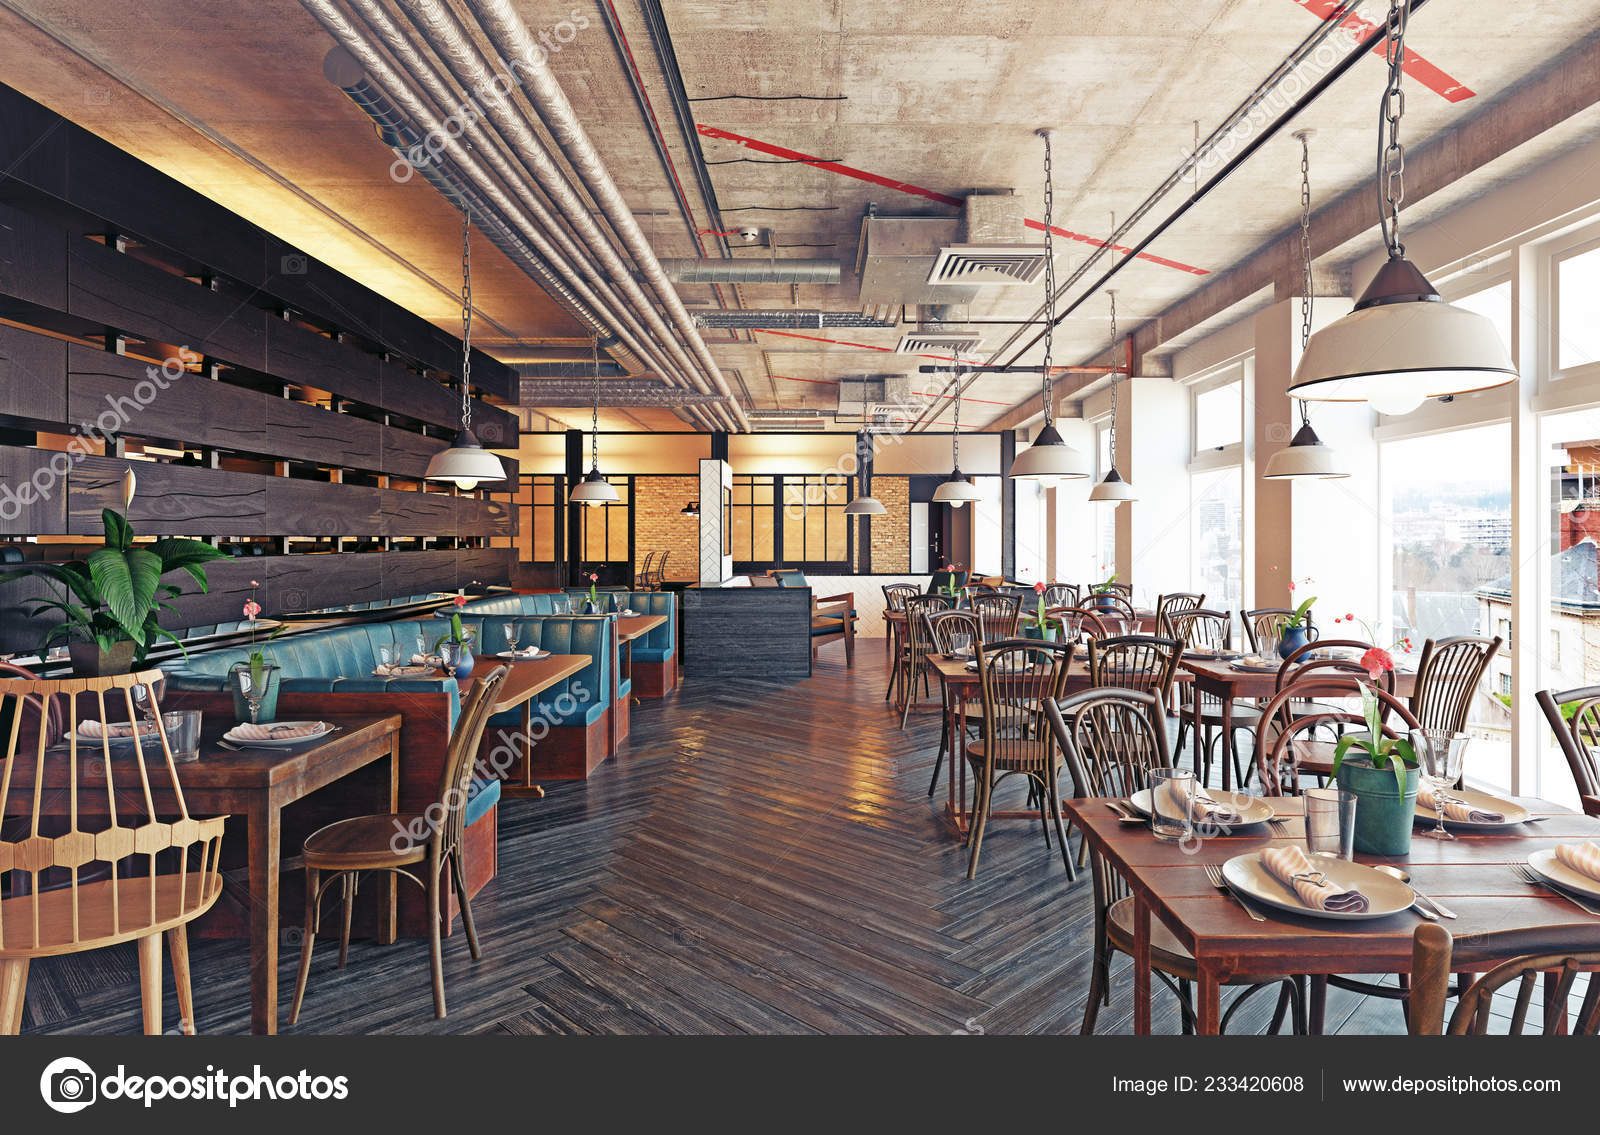 Modern Restaurant Interior Design Rendering Concept Stock Photo C Vicnt2815 233420608